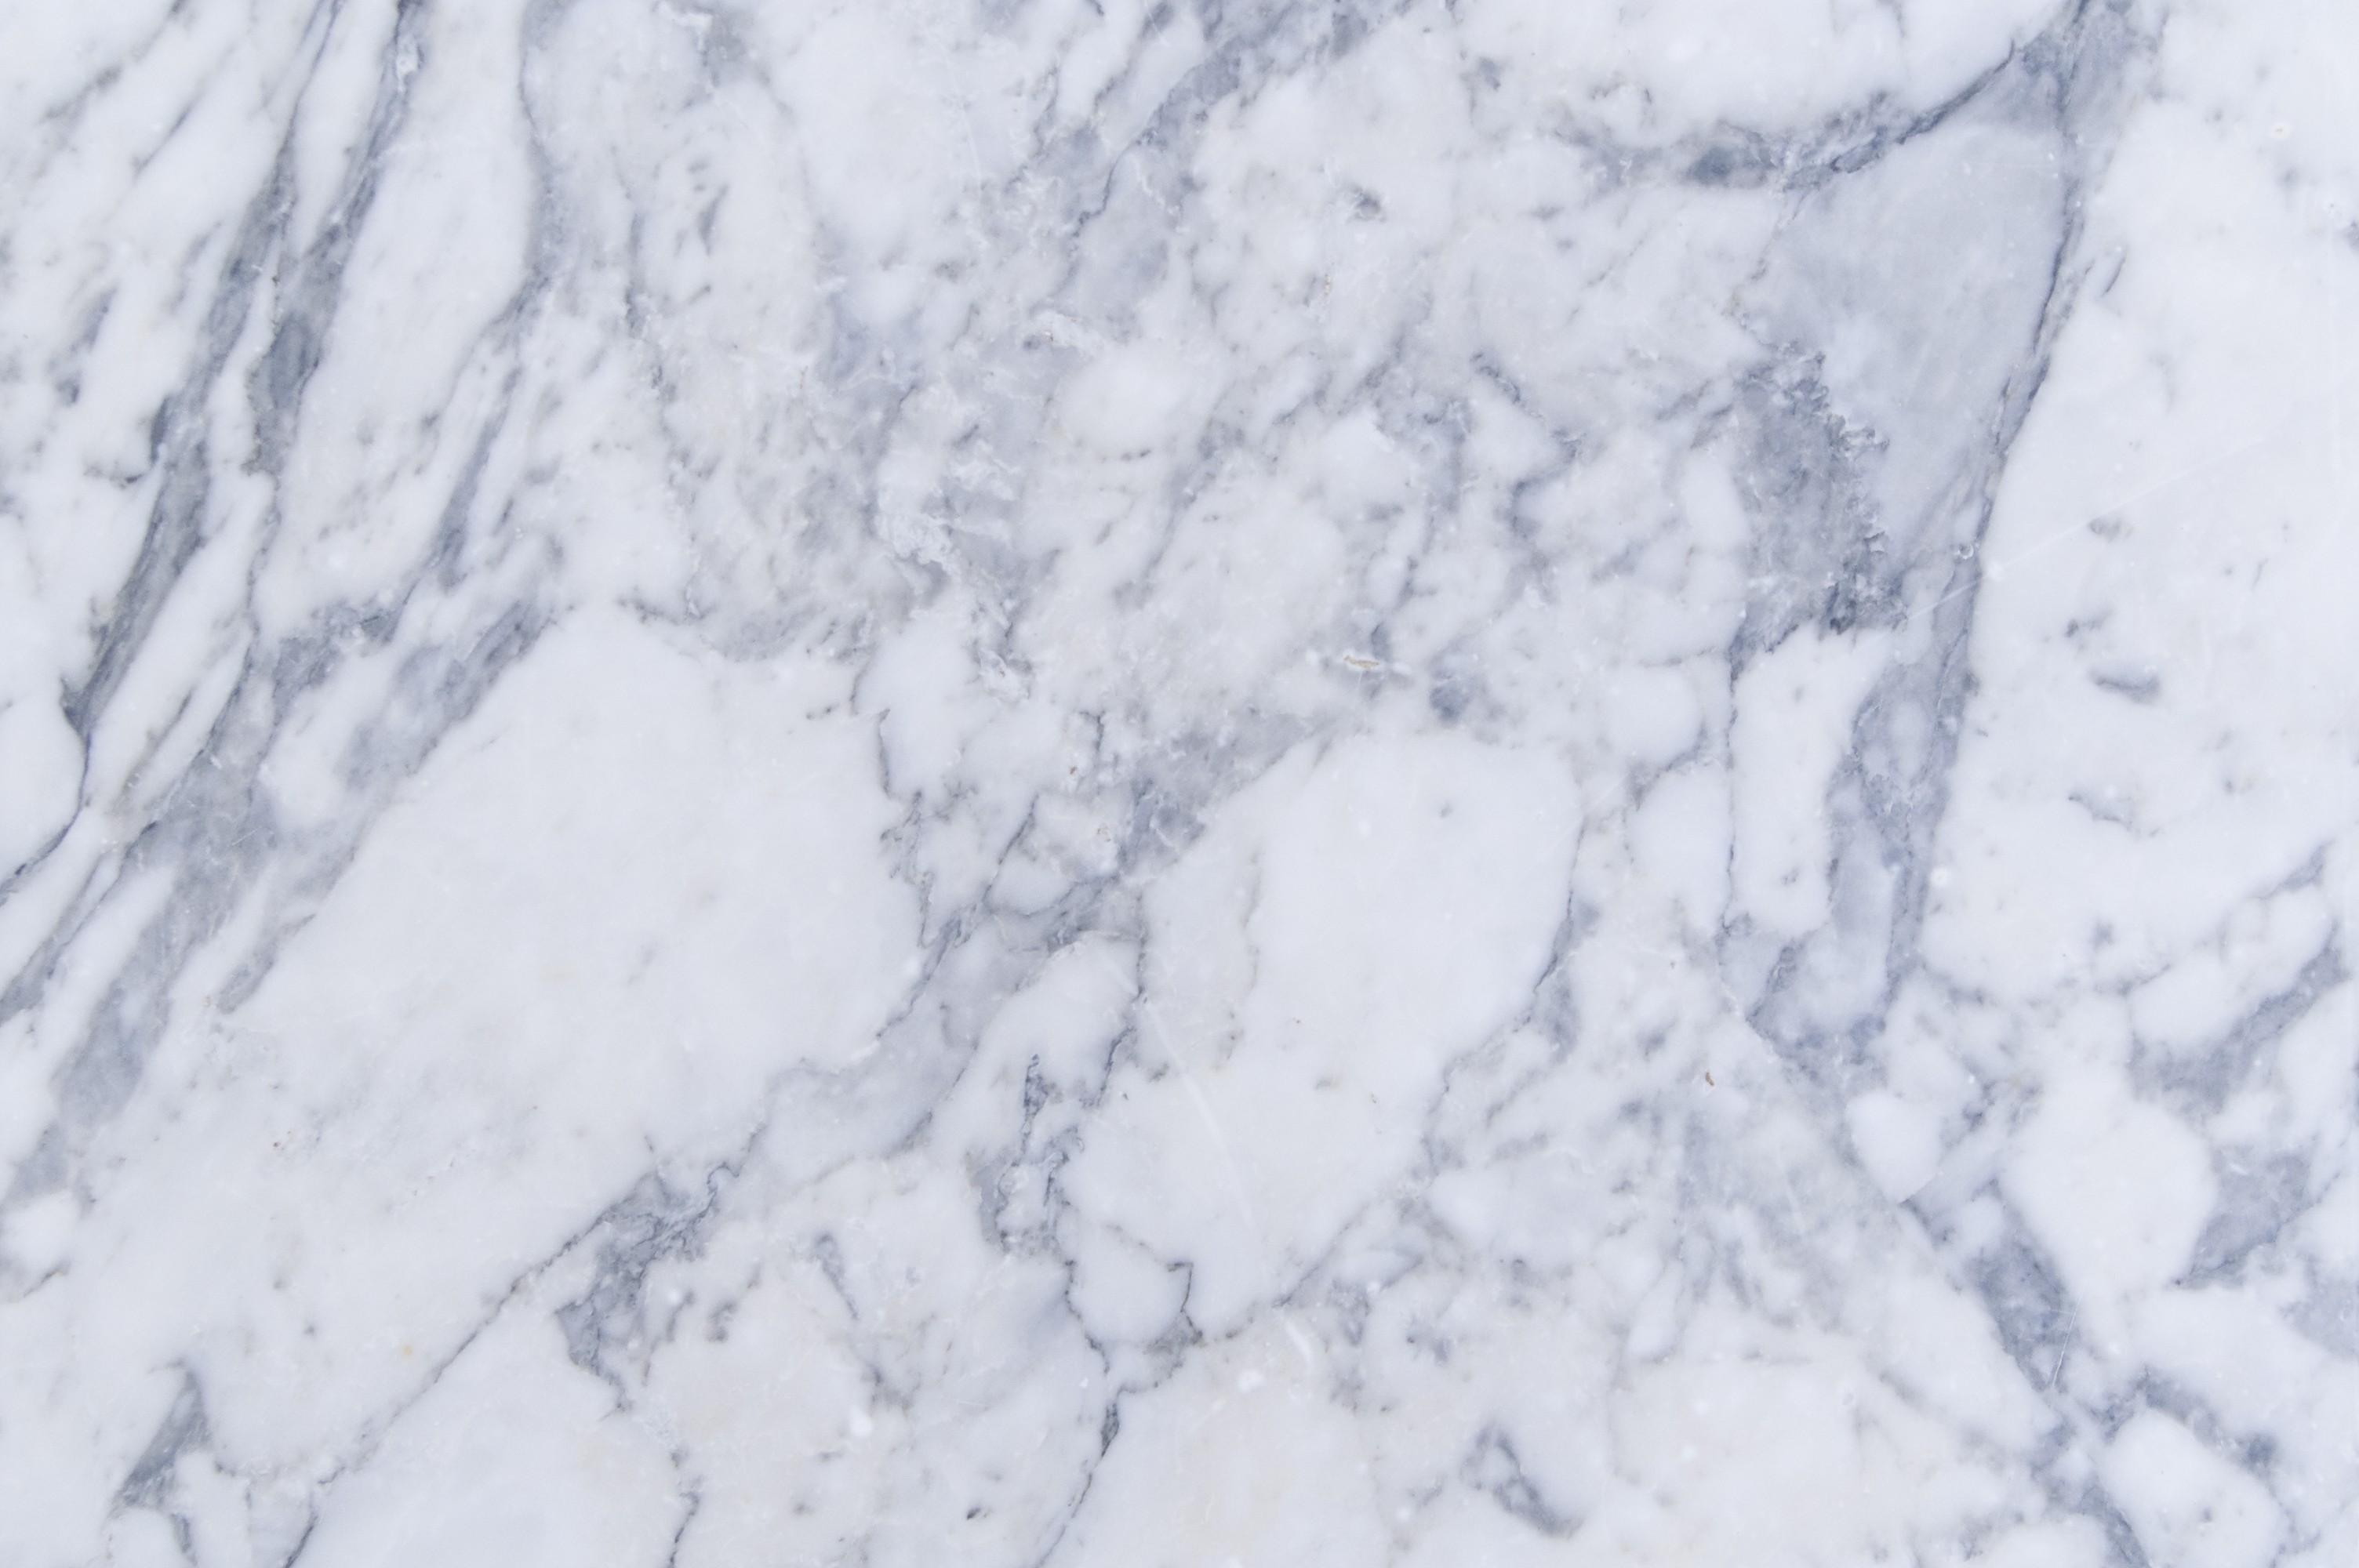 Amazing   Wallpaper Home Screen Marble - 283039-download-marble-background-3008x2000-for-4k  2018_98831.jpg